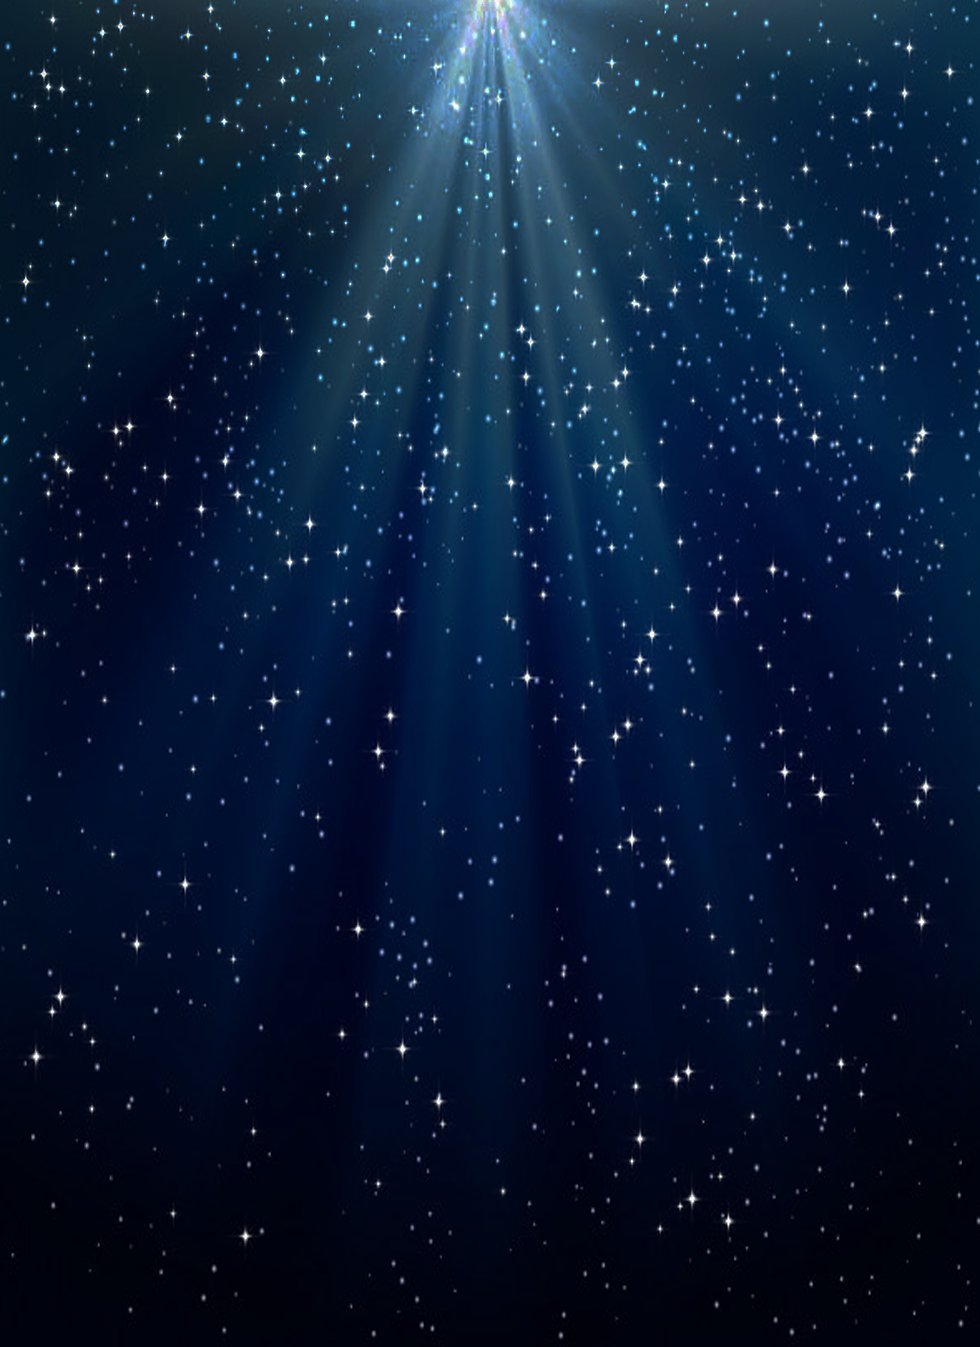 star-background.png